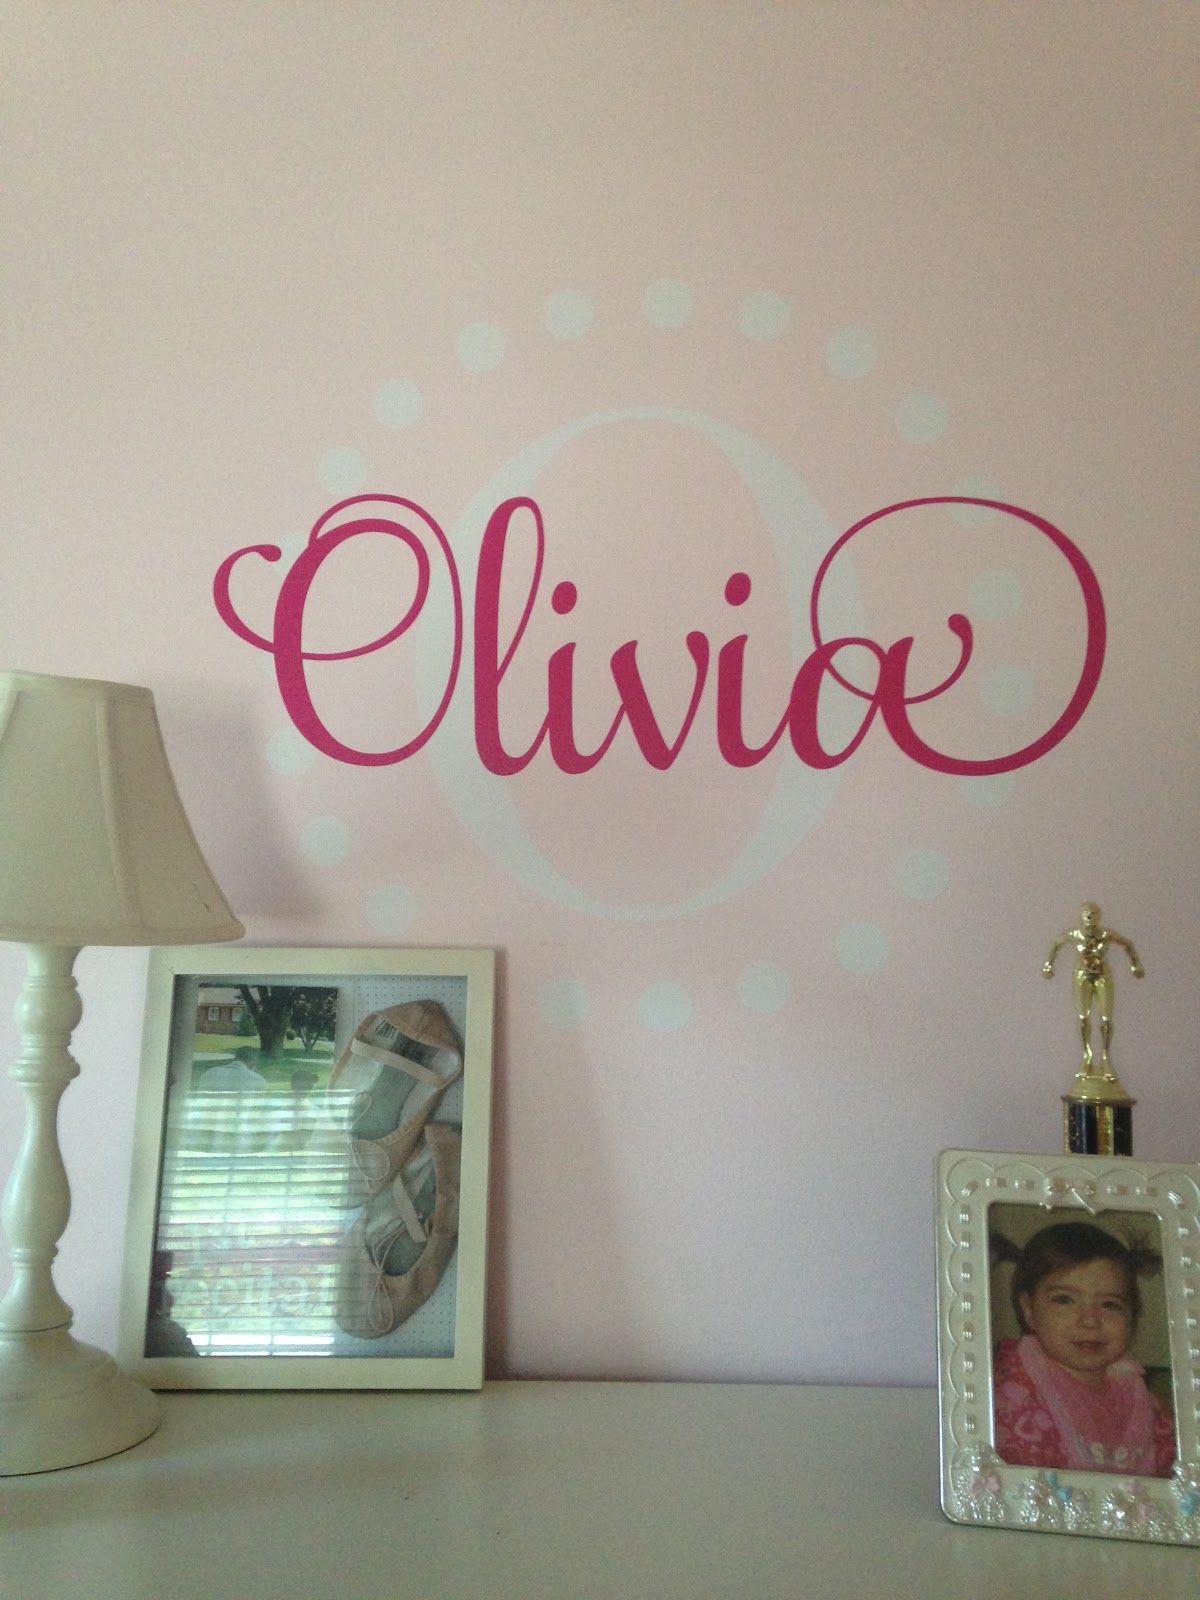 How To Hang A Large Vinyl Wall Decal Silhouette Tutorial Part - How to make vinyl decals with silhouette